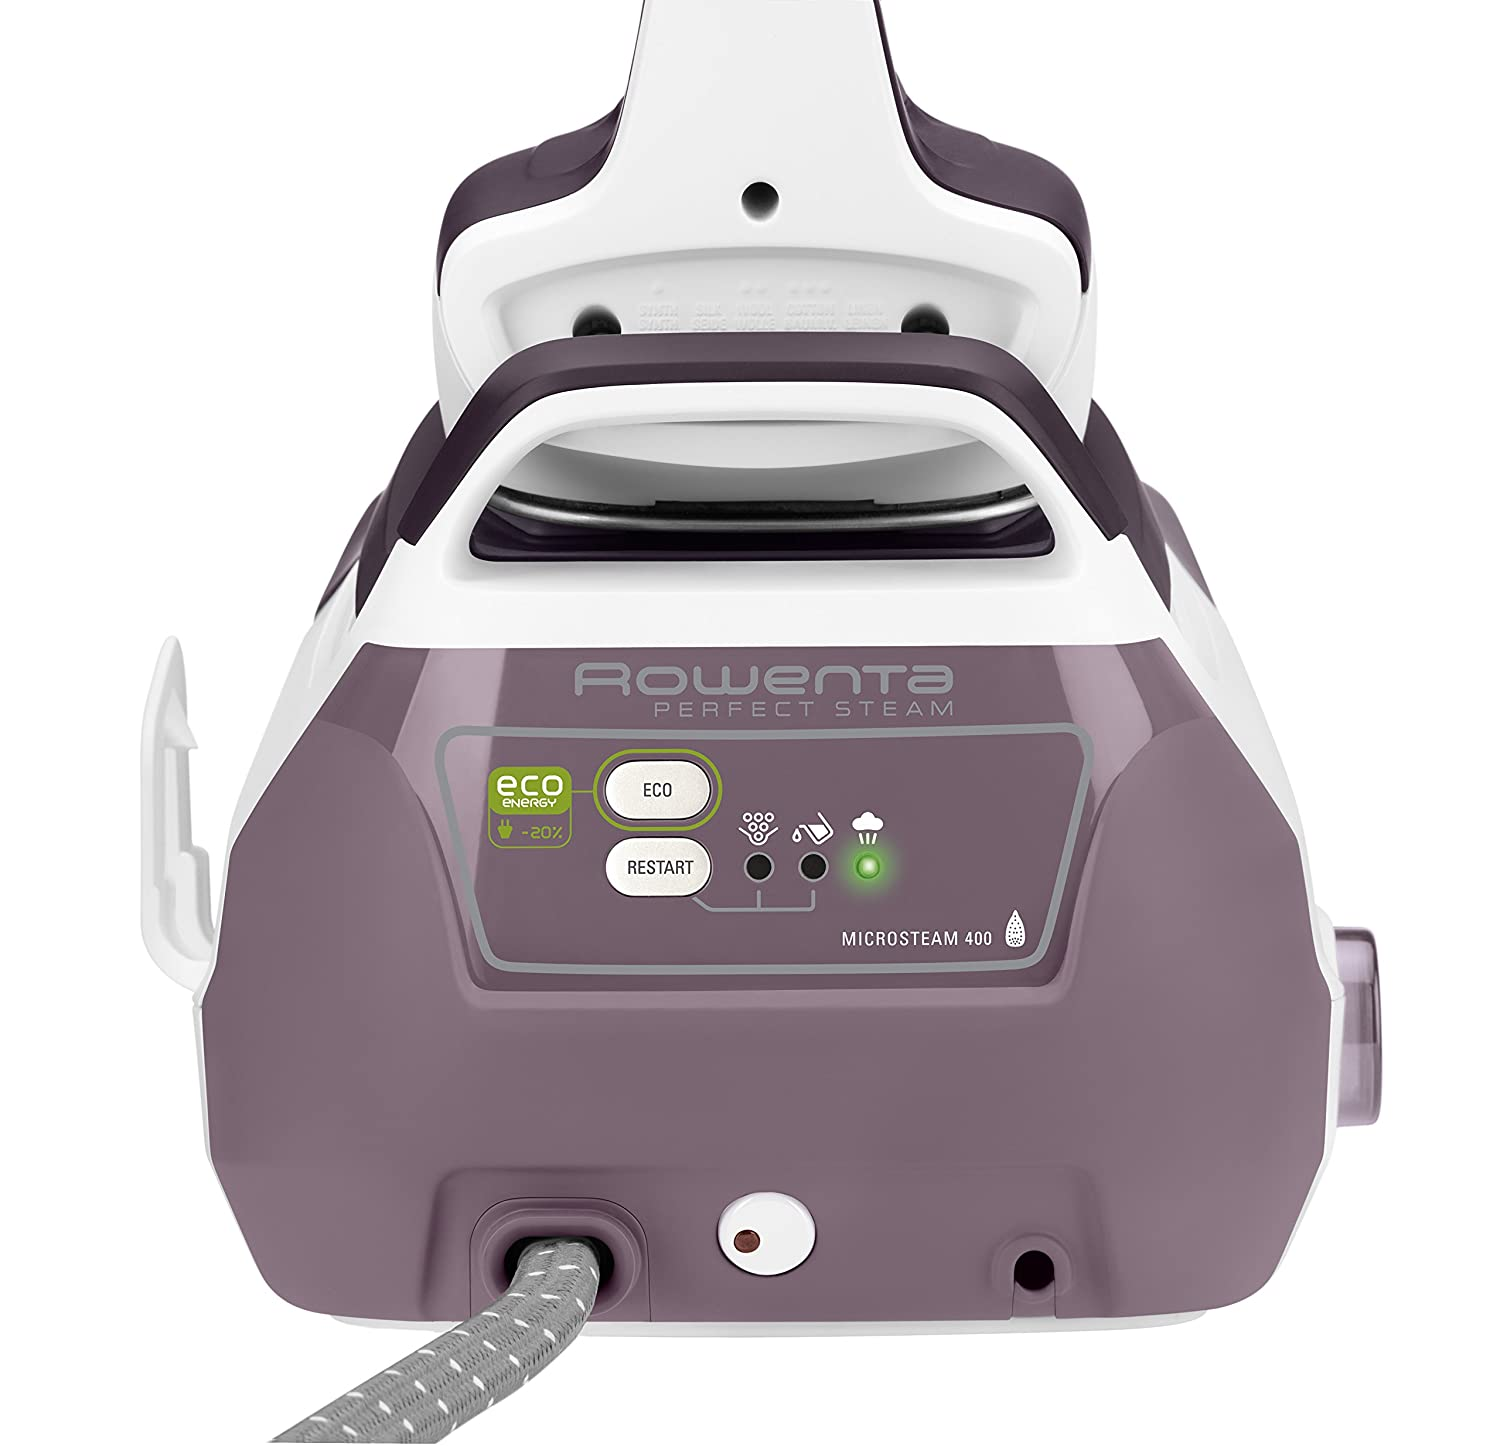 Cleaning rowenta pressure iron and steamer - Amazon Com Rowenta Dg8520 Perfect Steam 1800 Watt Eco Energy Steam Iron Station Stainless Steel Soleplate 400 Hole Purple Home Kitchen